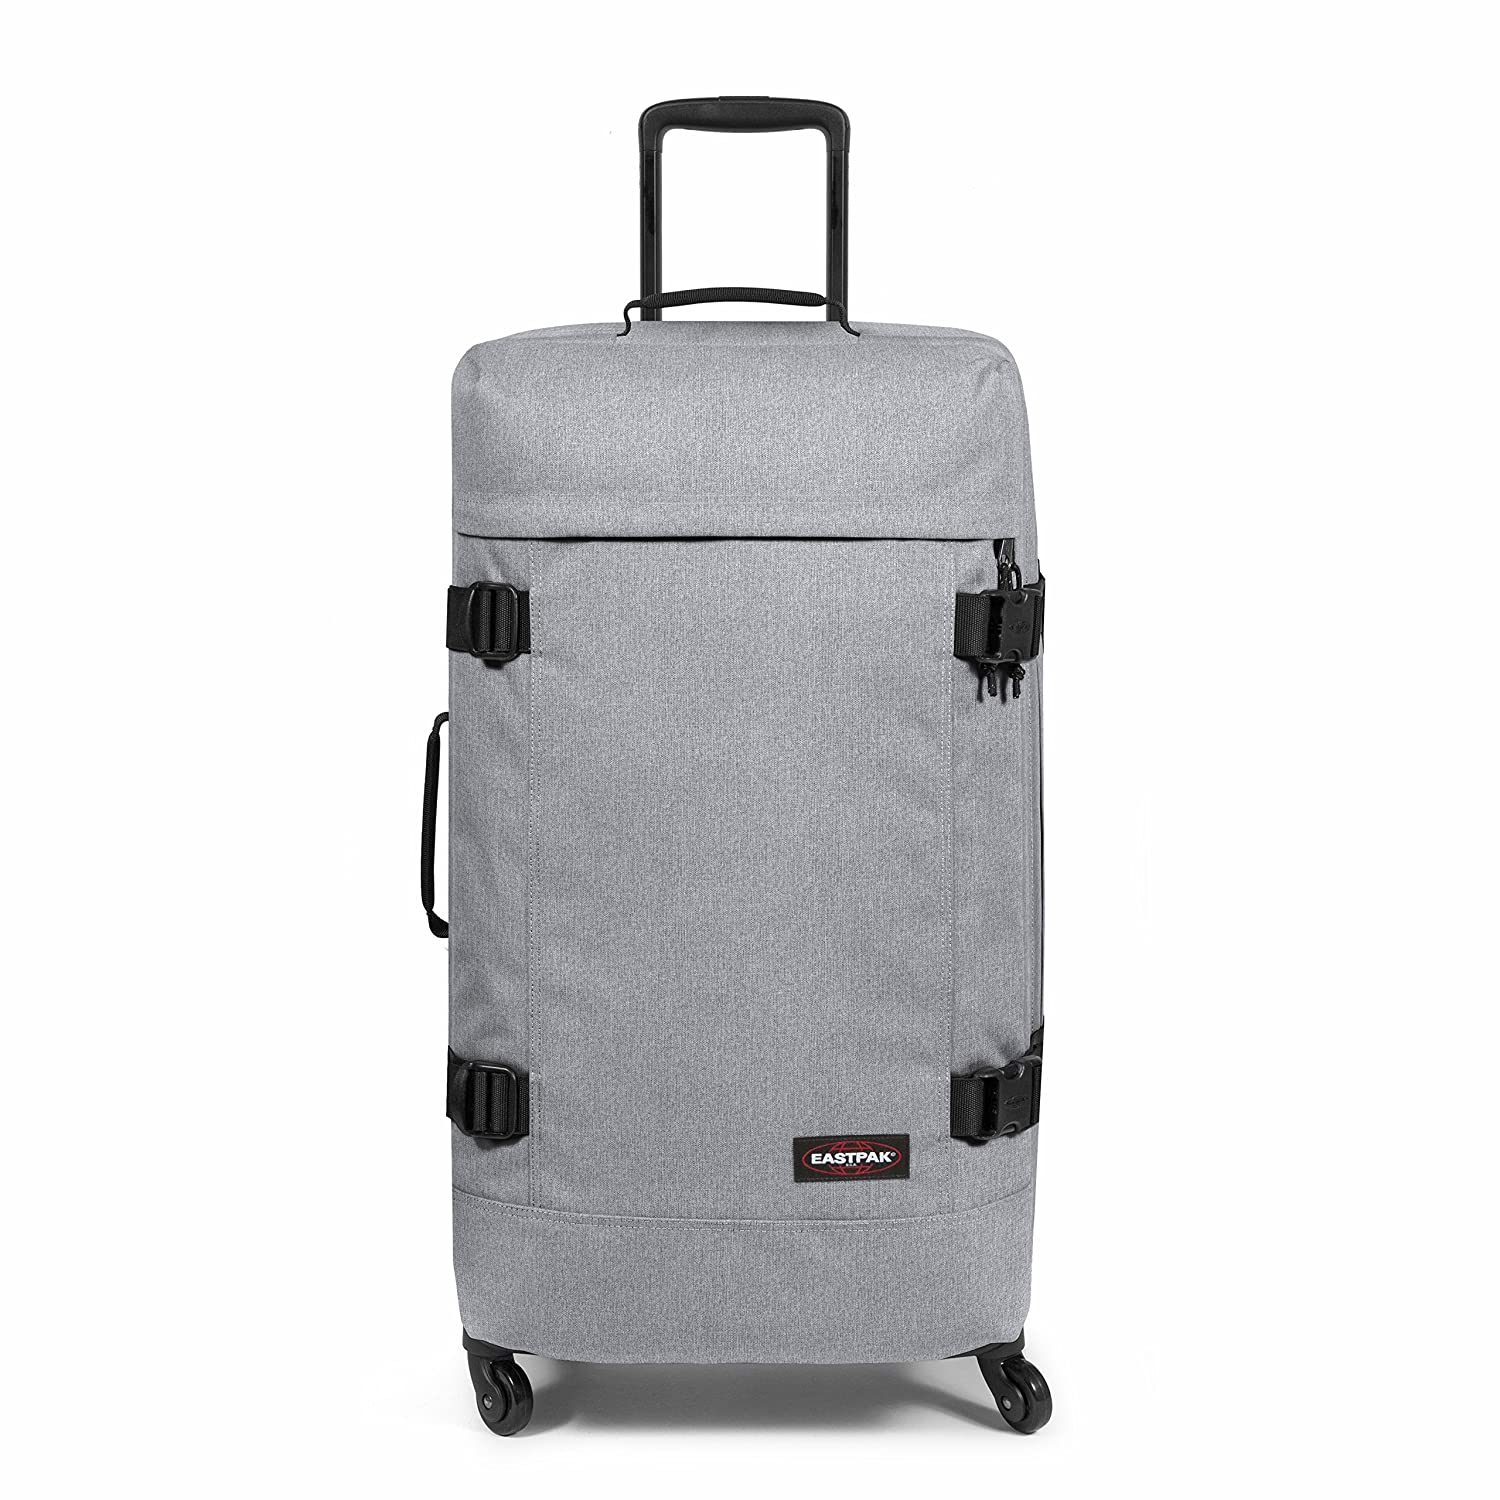 Eastpak Trans4 L Maleta, 80 litros, Gris (Sunday Grey): Amazon.es: Equipaje